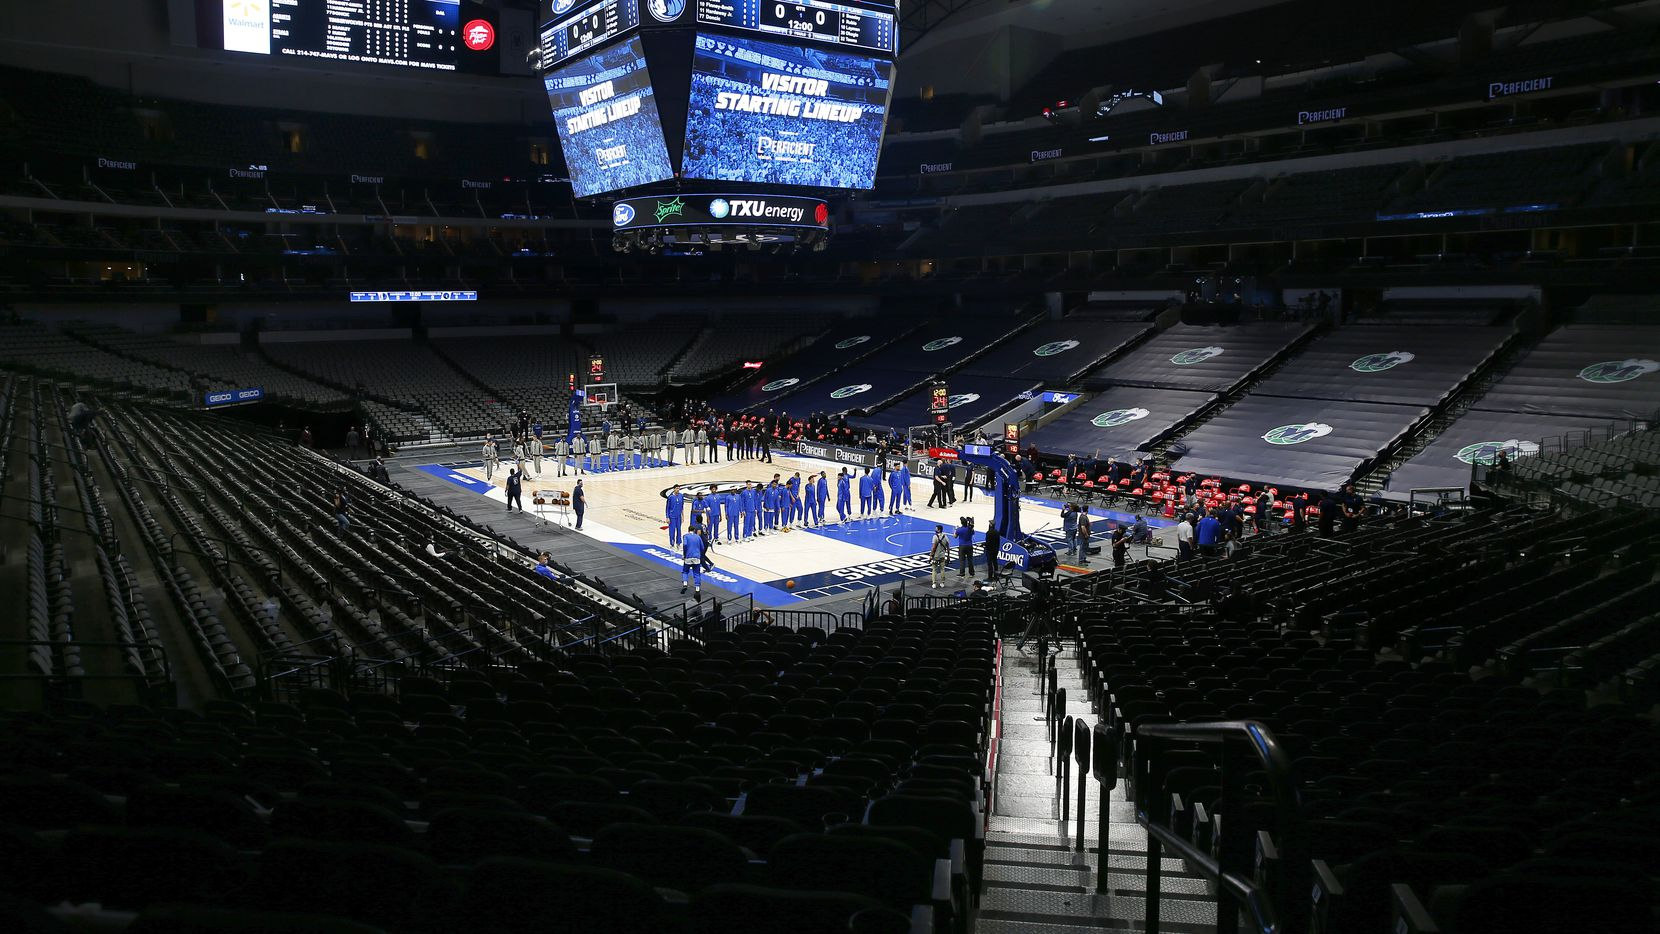 Before the empty stands of American Airlines Center, the Dallas Mavericks and Minnesota Timberwolves line up for the national anthem on Thursday, Dec. 17, 2020. The players were confused because the national anthem wasn't played before their preseason game.